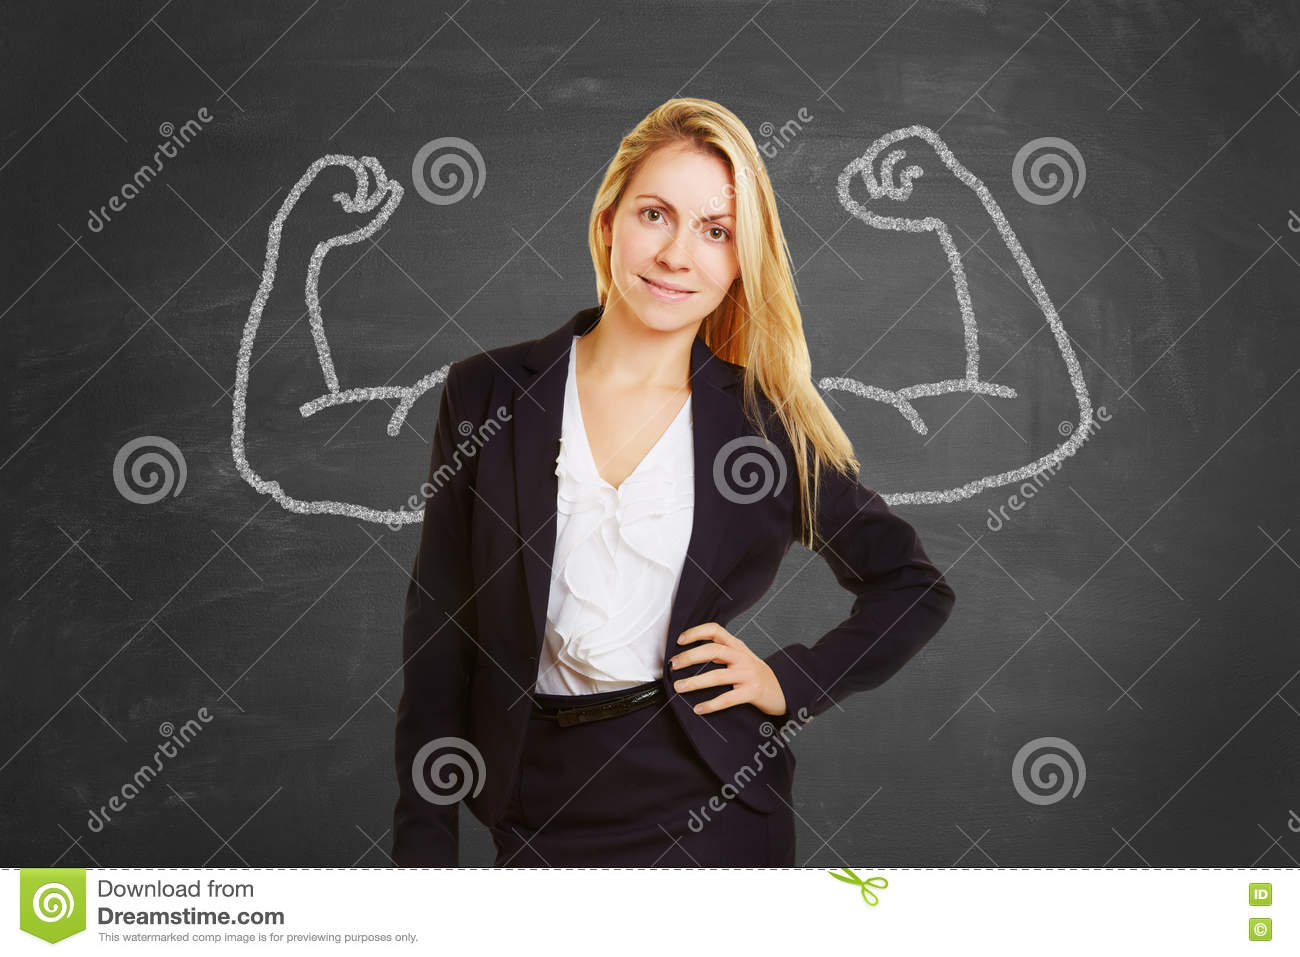 Successful businesswoman with fake muscles